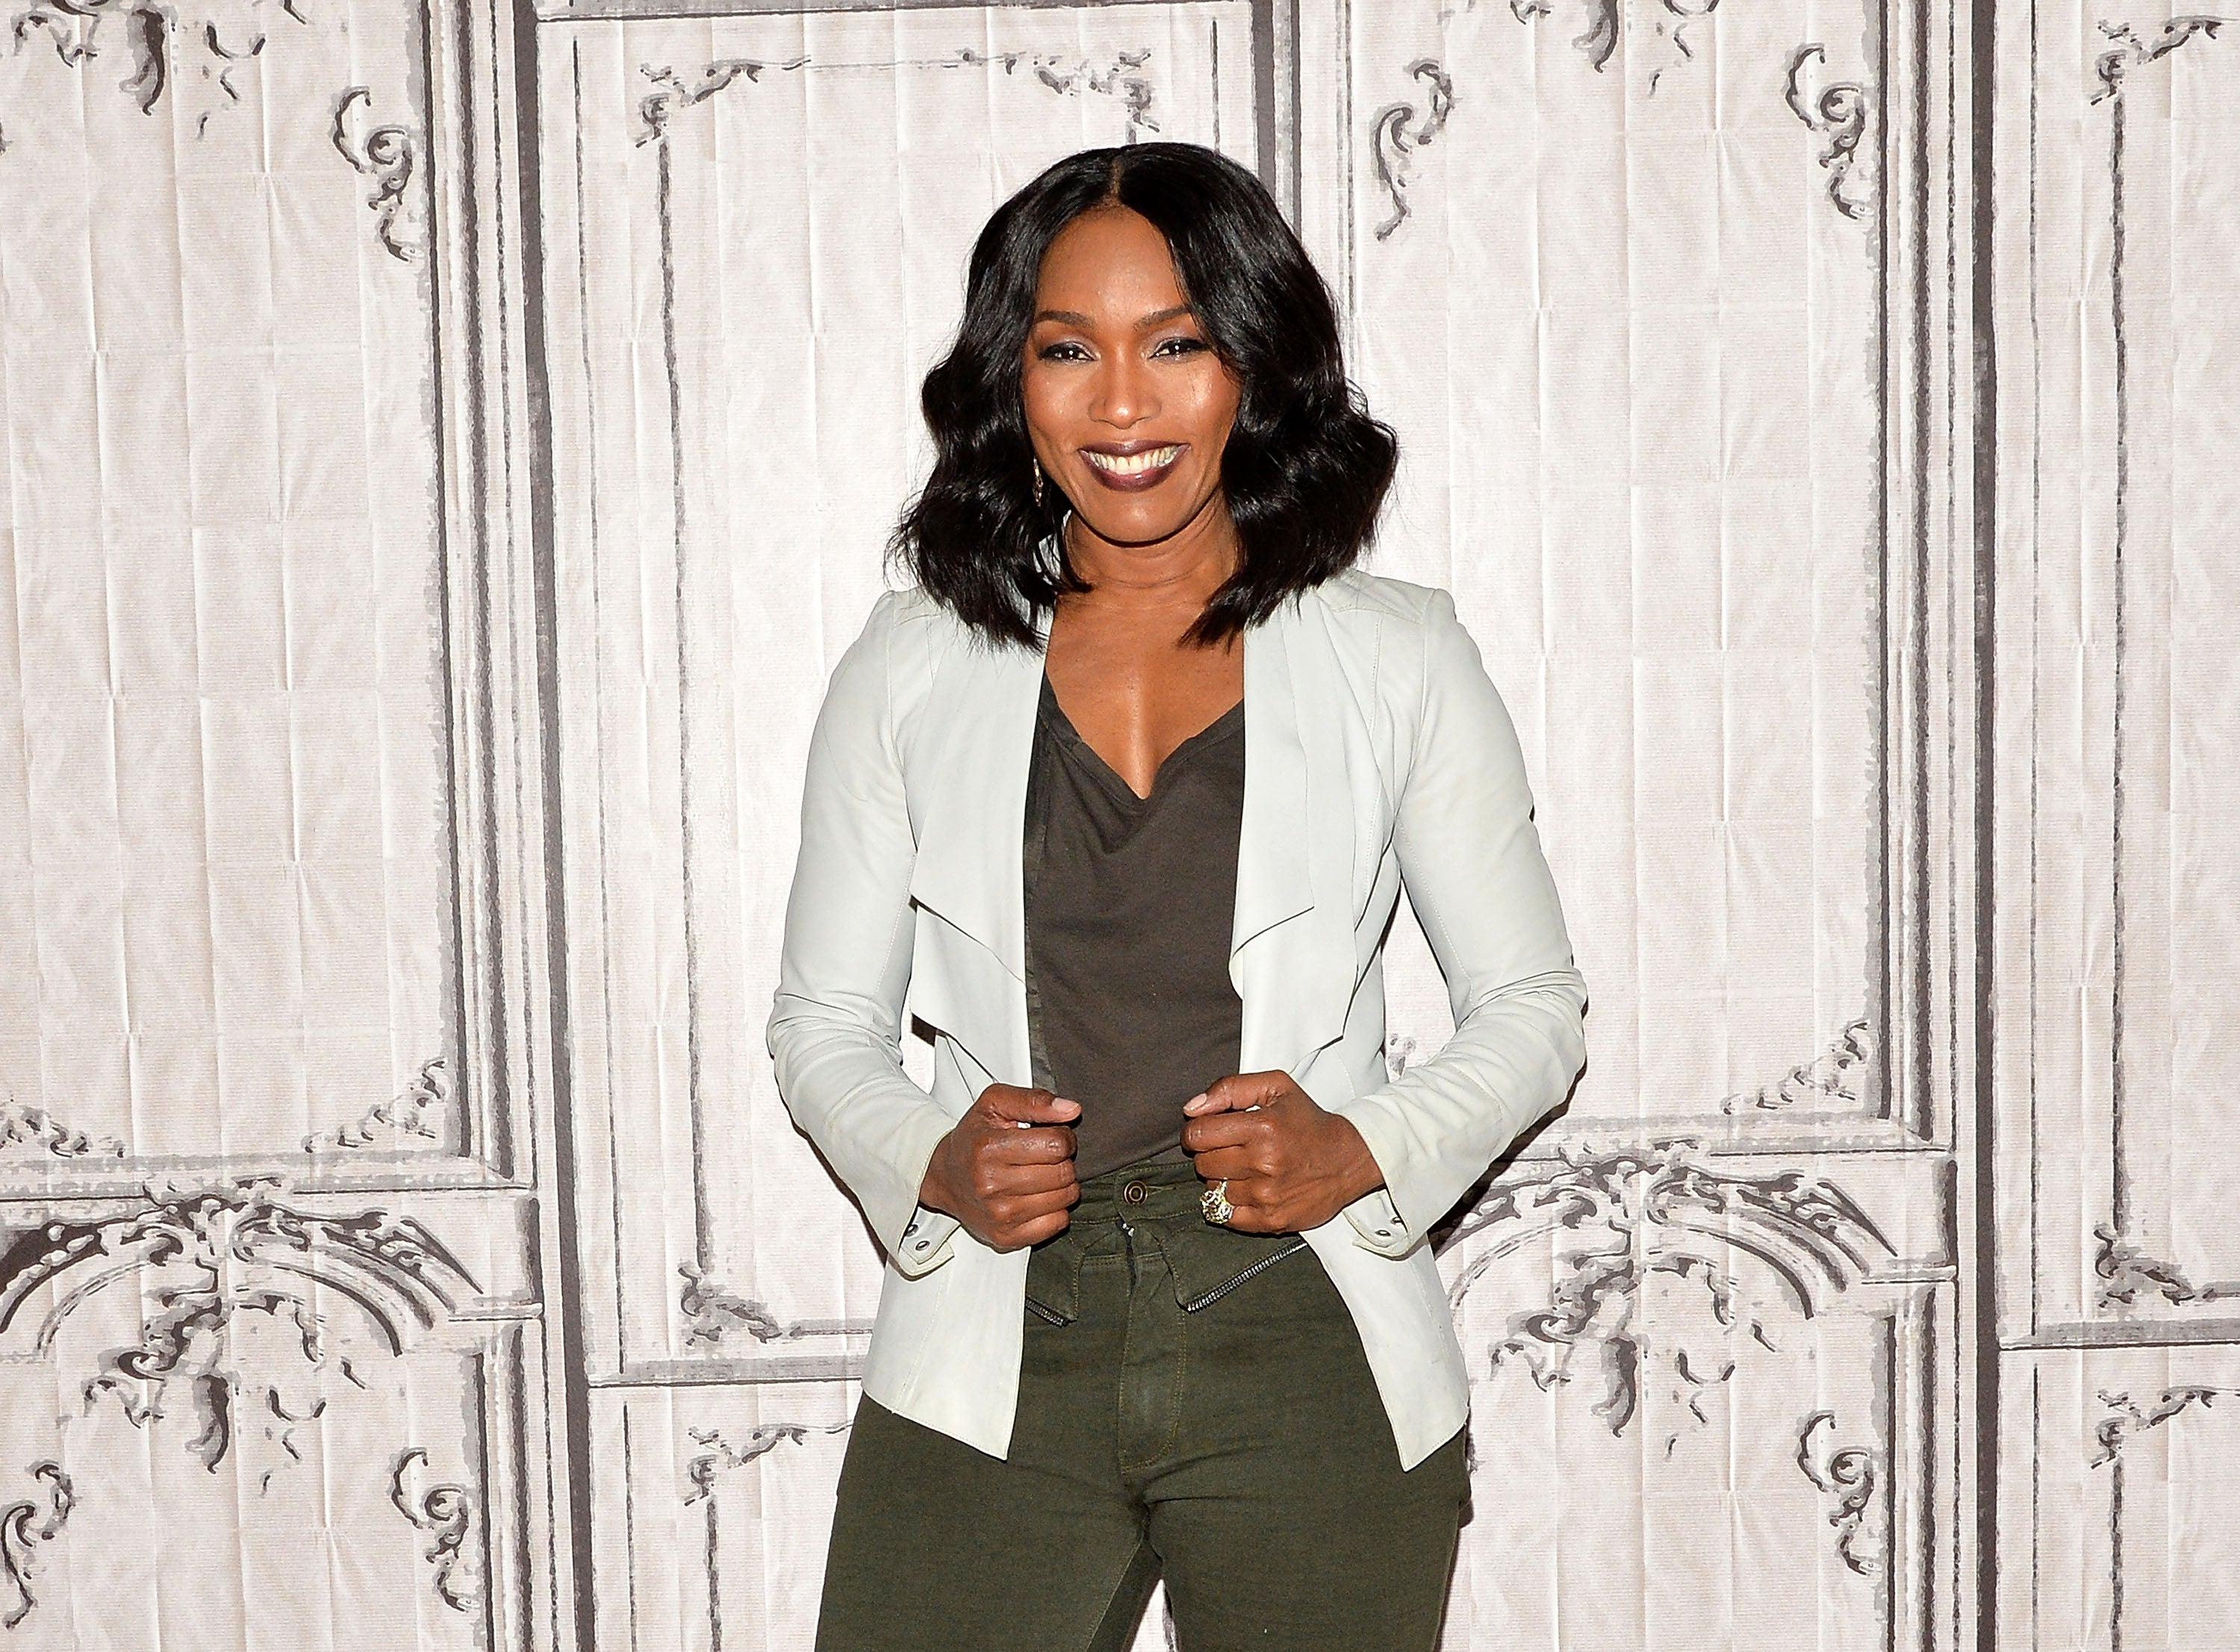 Angela Bassett Loved Being The Bad Guy In 'Bumblebee'